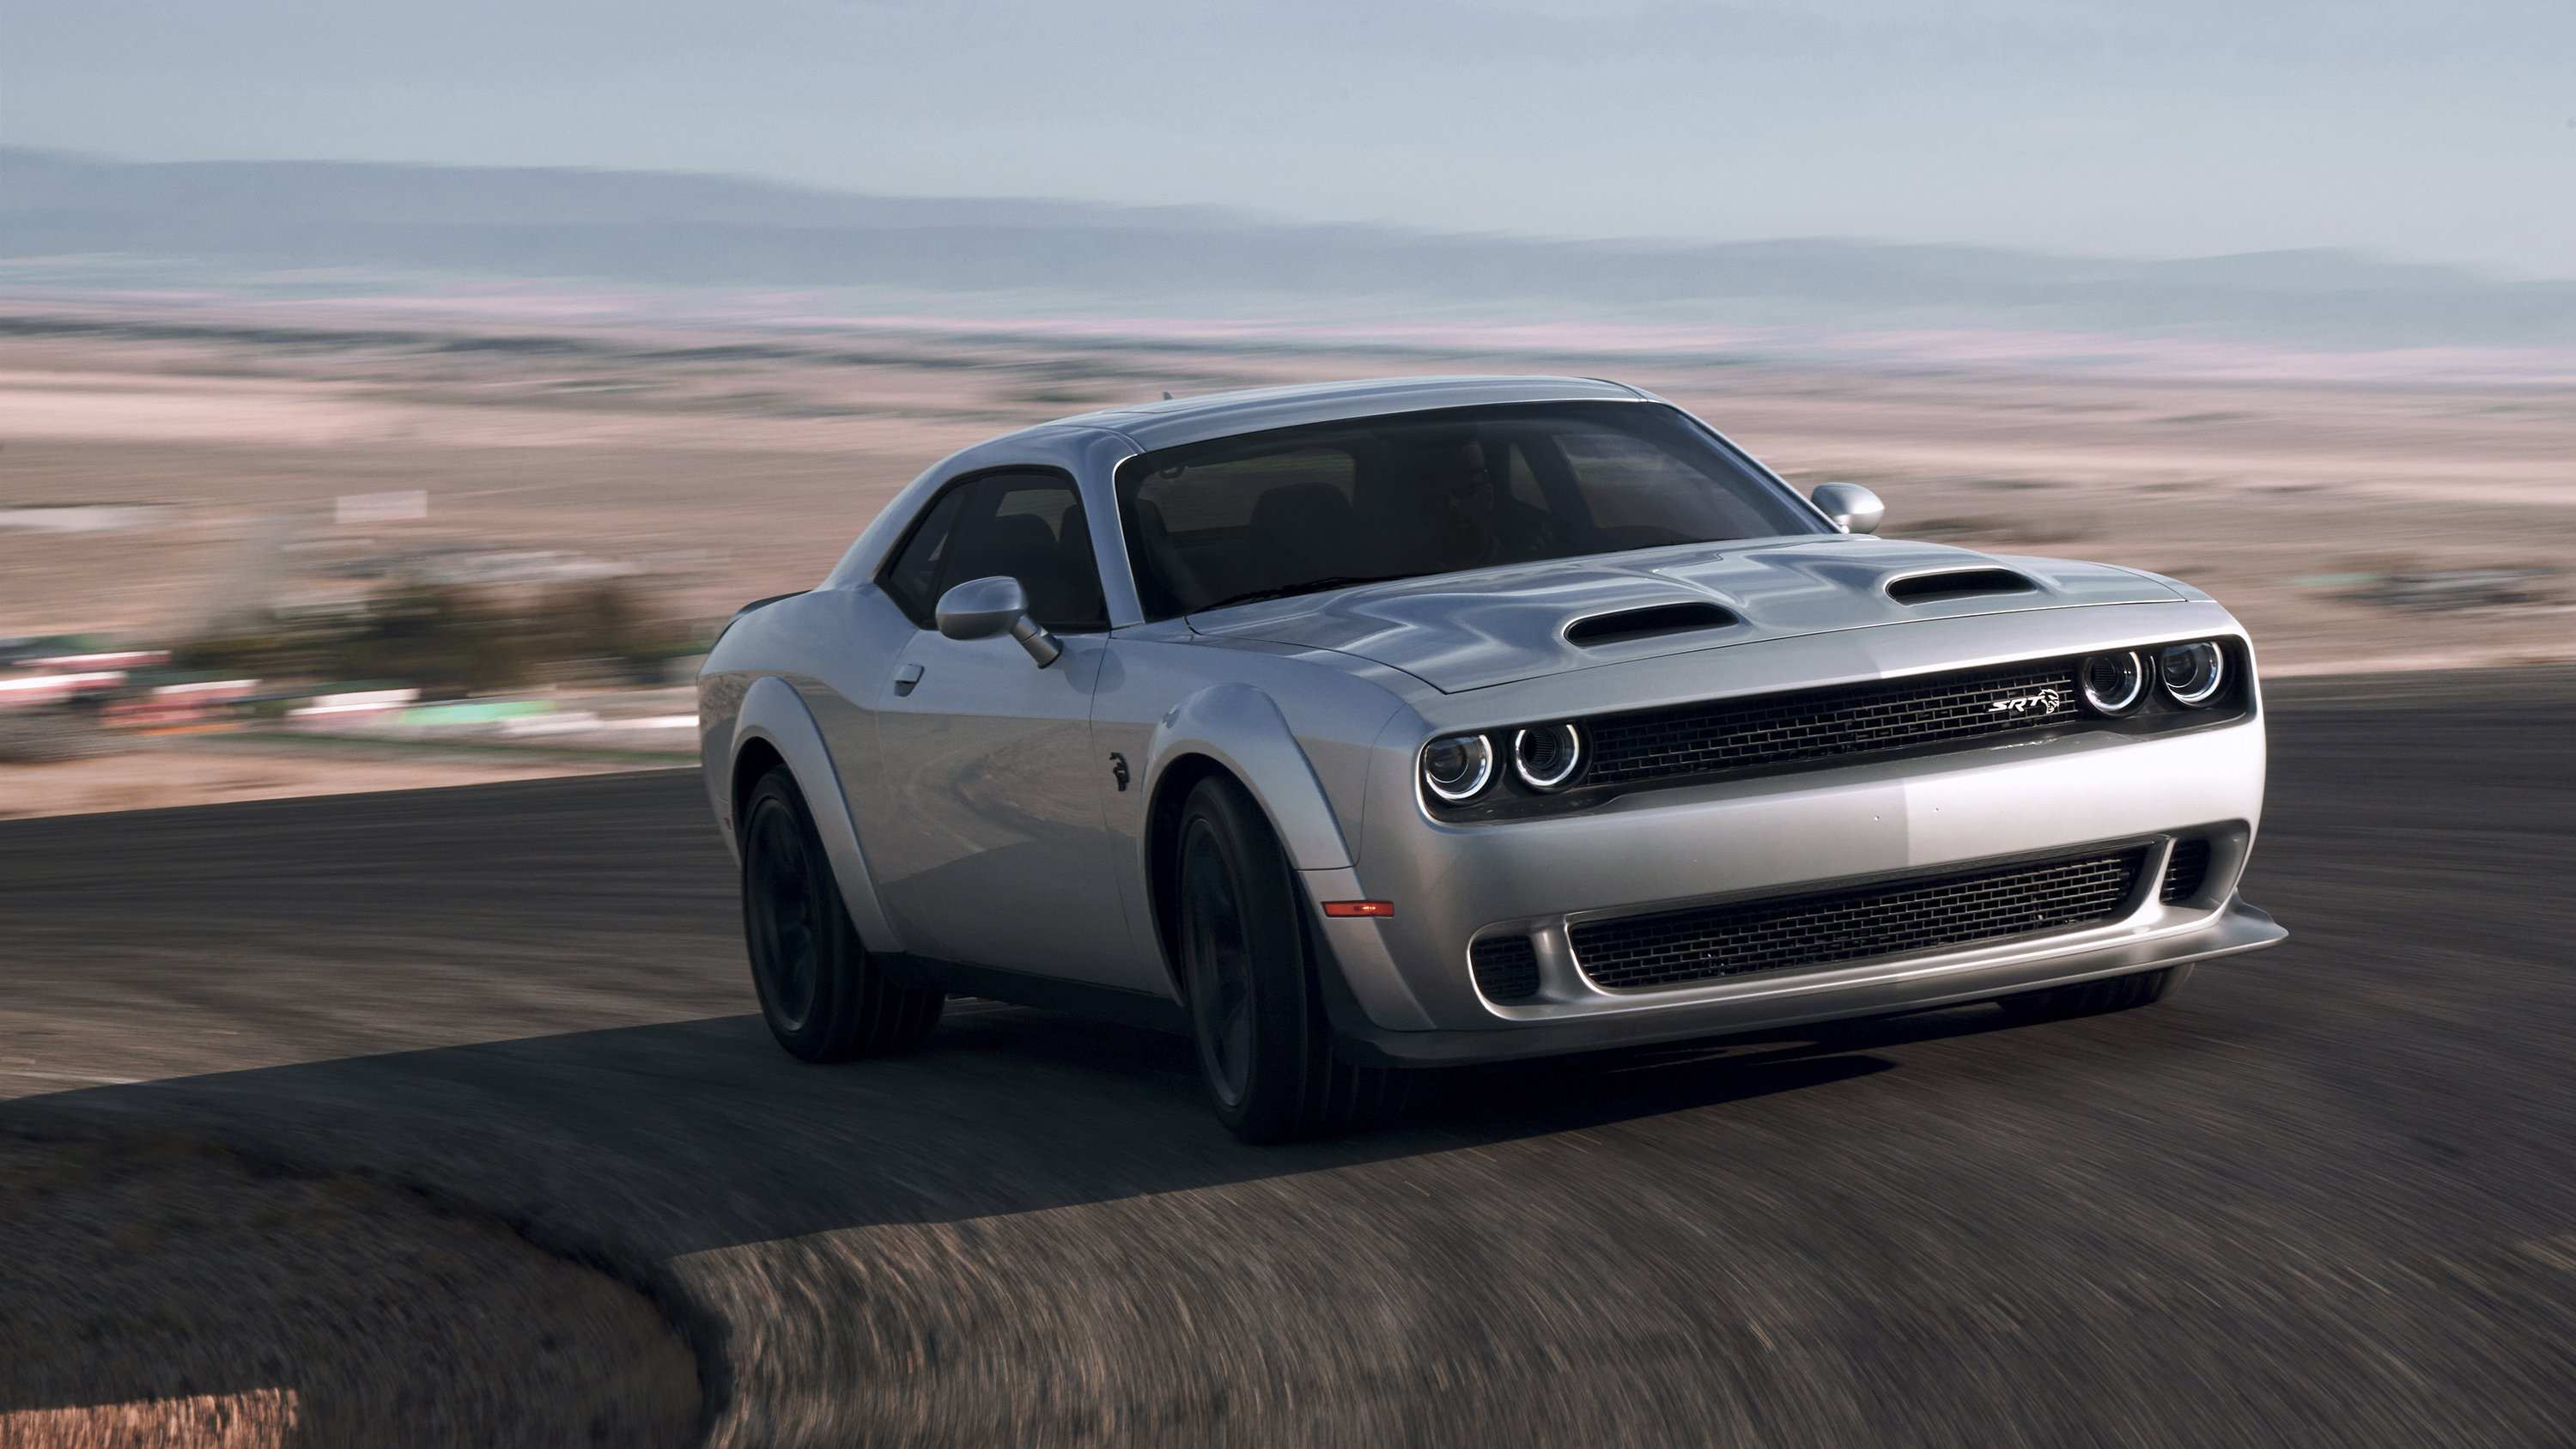 94 New Dodge Challenger Concept 2020 Price Design And Review